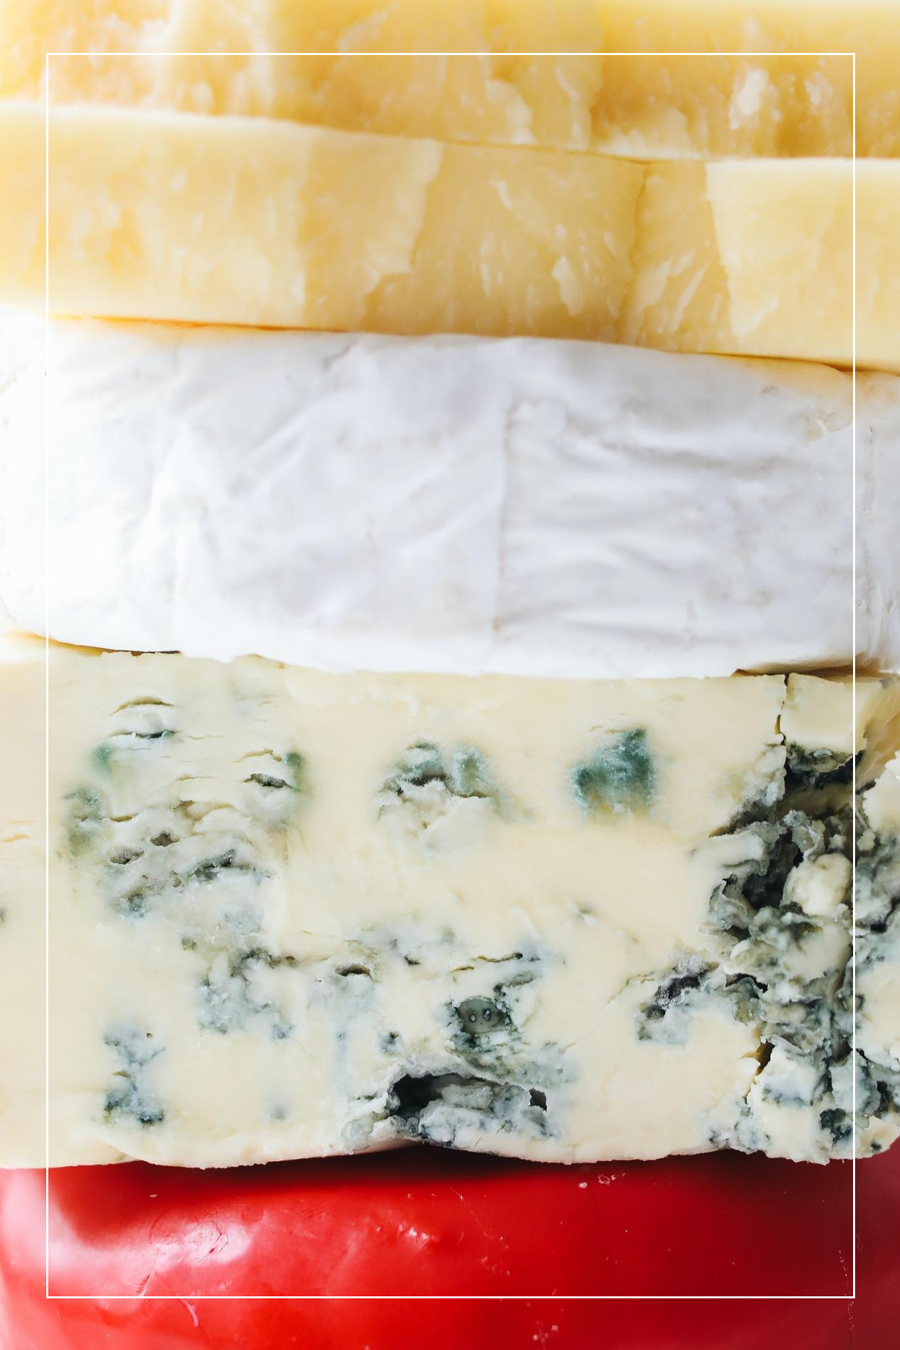 What cheese mold will I need